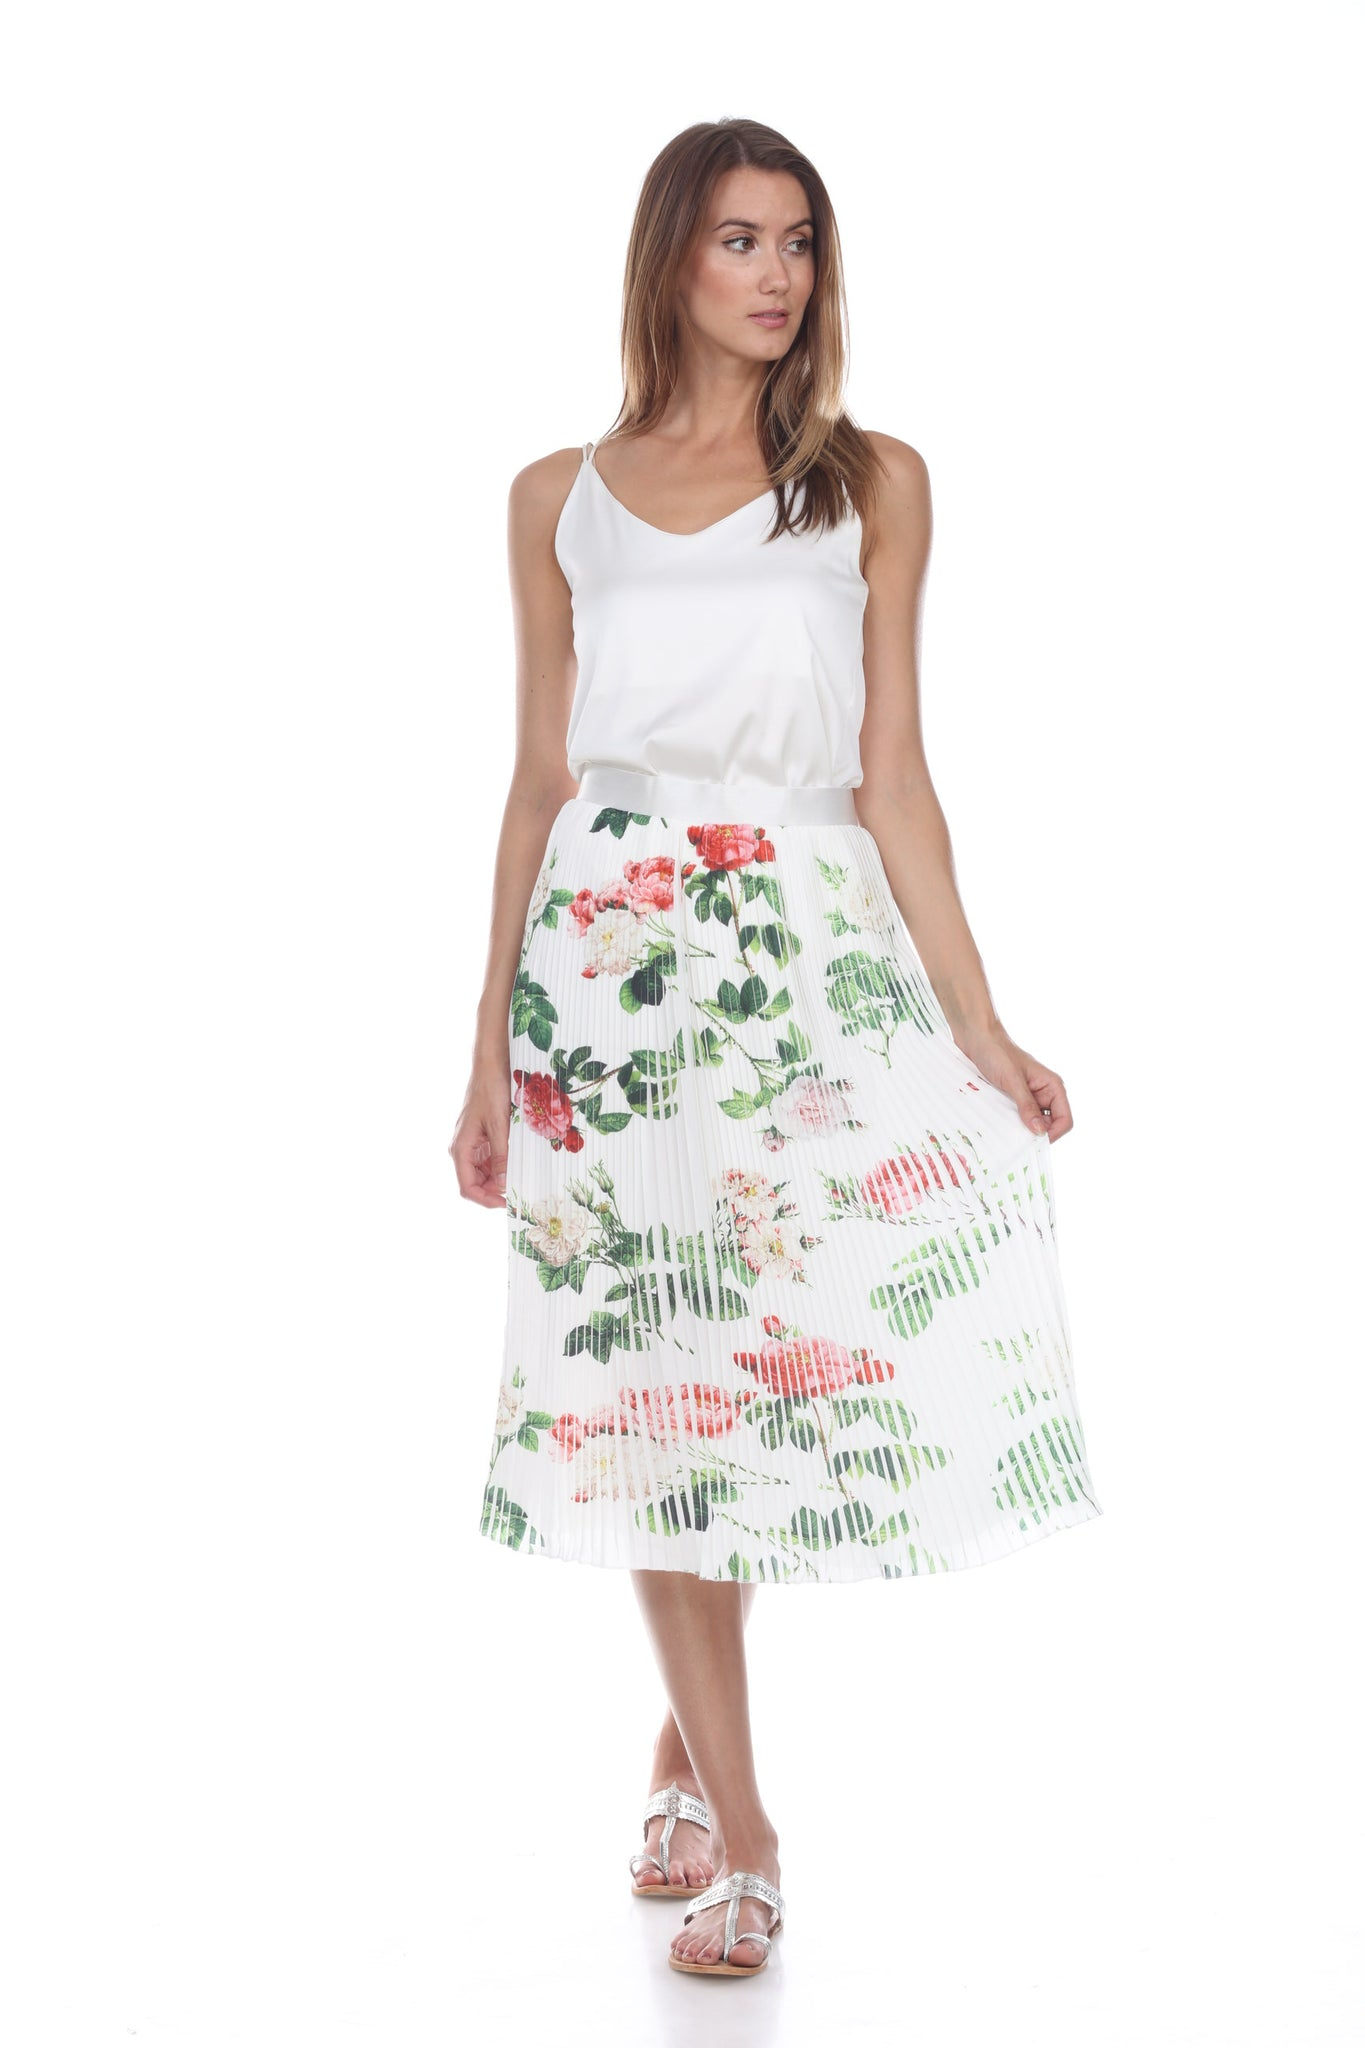 Floral Print Pleated Skirt - Mulberry & Me Chicago Boutique